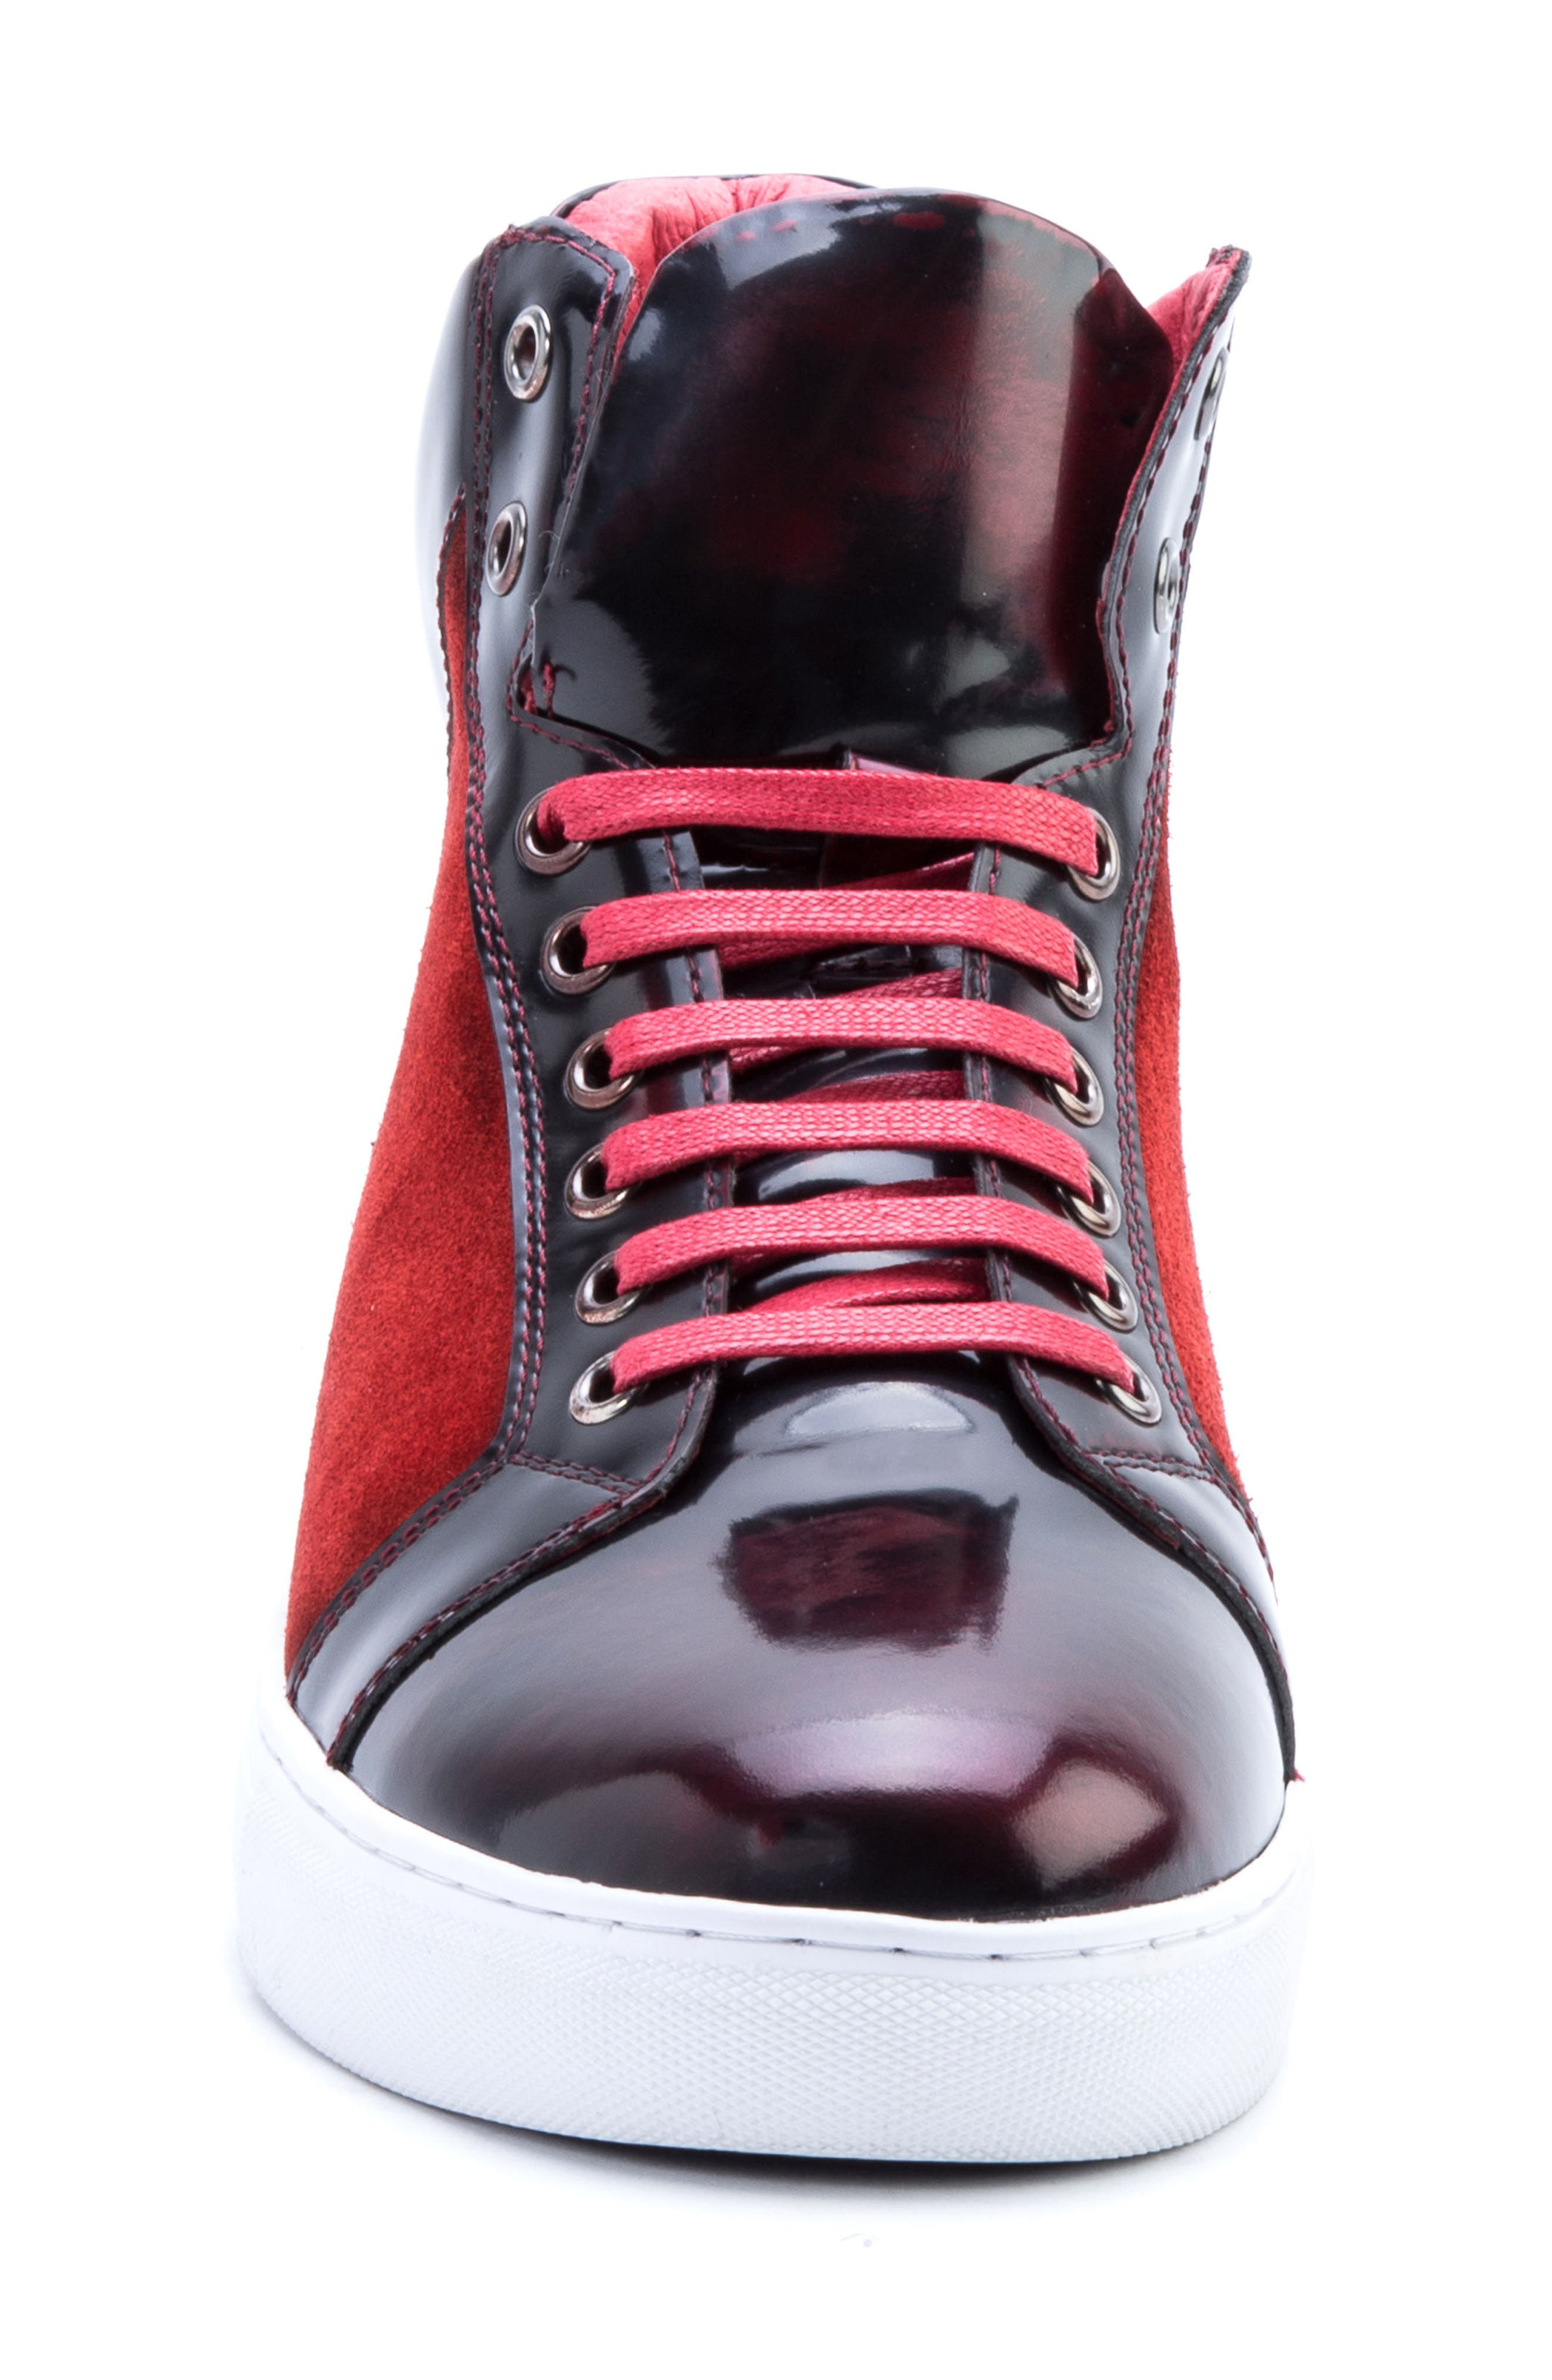 Douglas High Top Sneaker,                             Alternate thumbnail 4, color,                             RED LEATHER